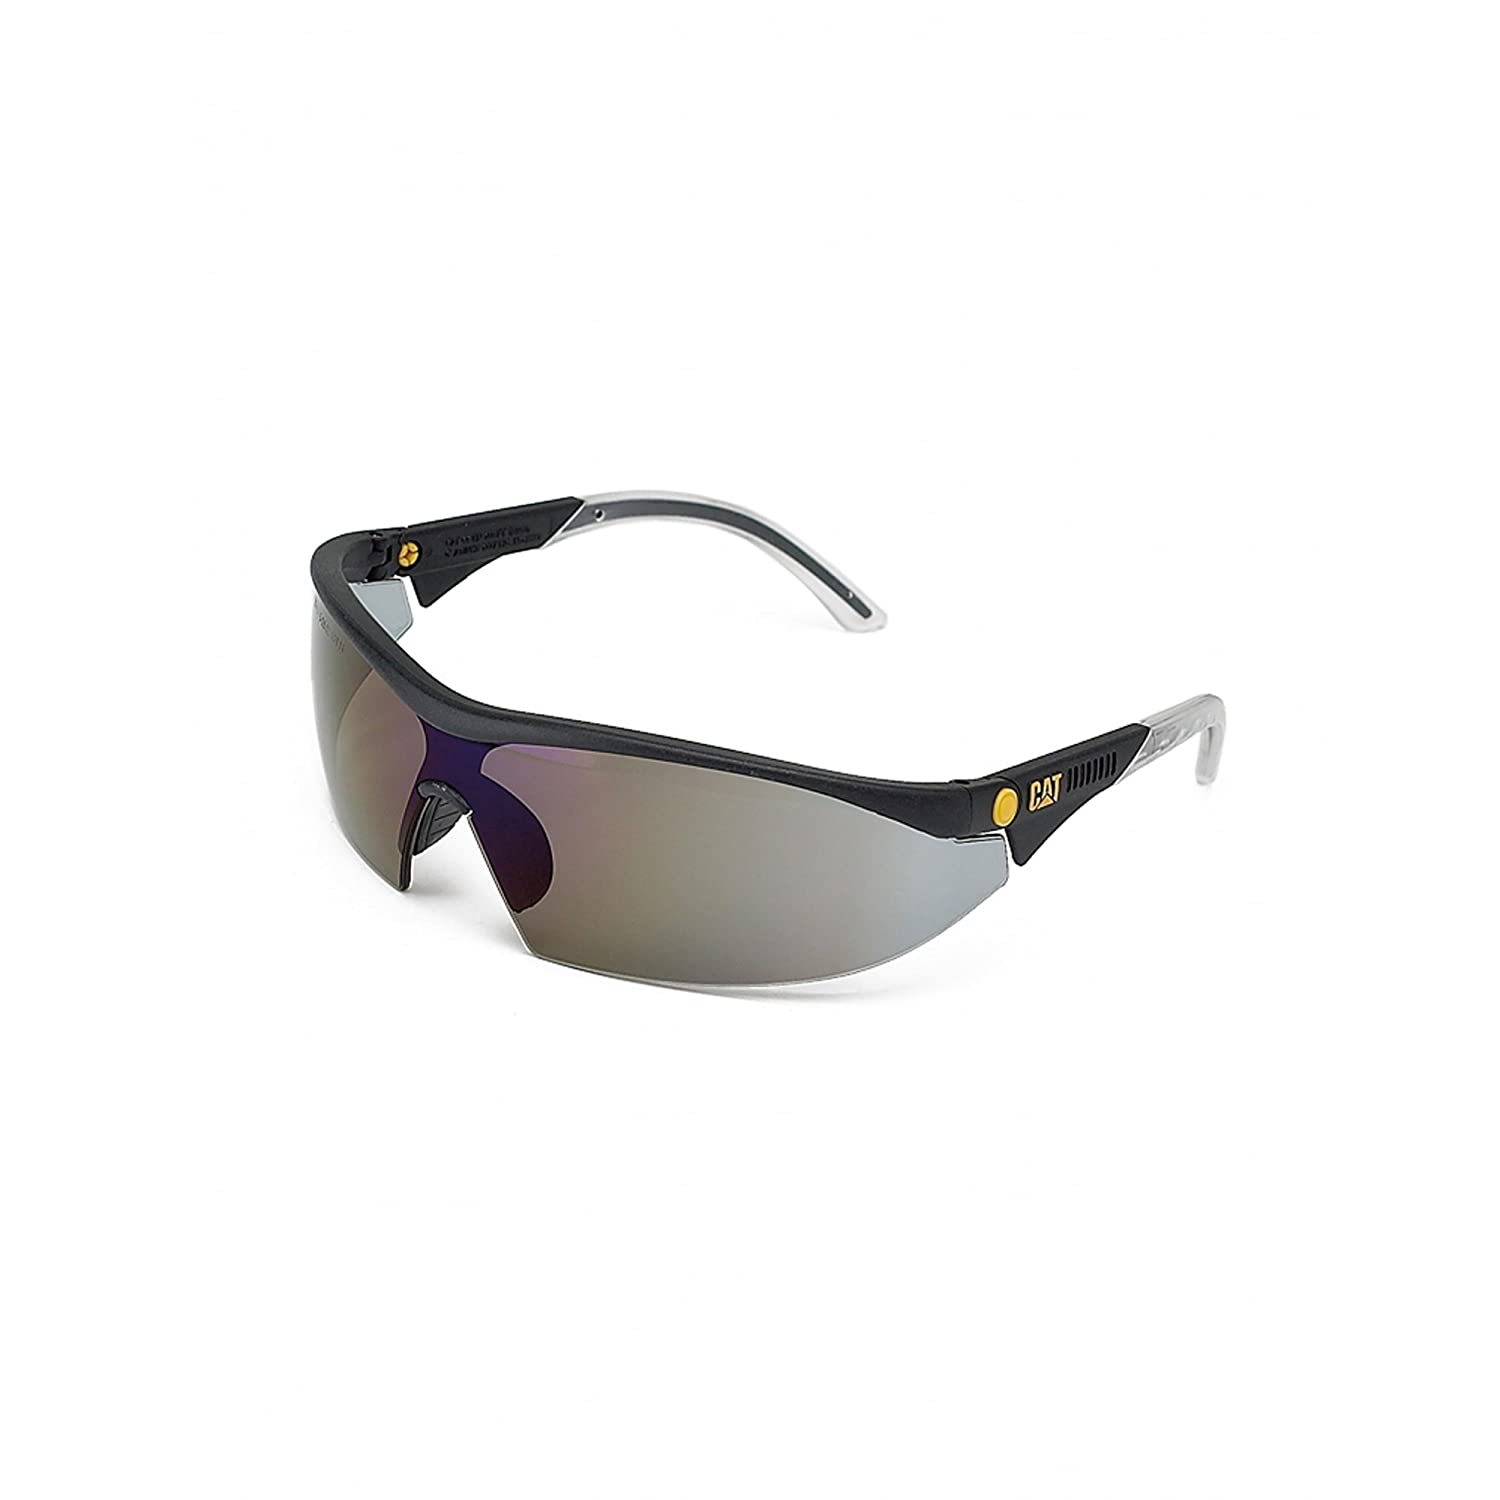 Caterpillar Track rahmenlose Brille (One Size) (Gelb) zB97yQq